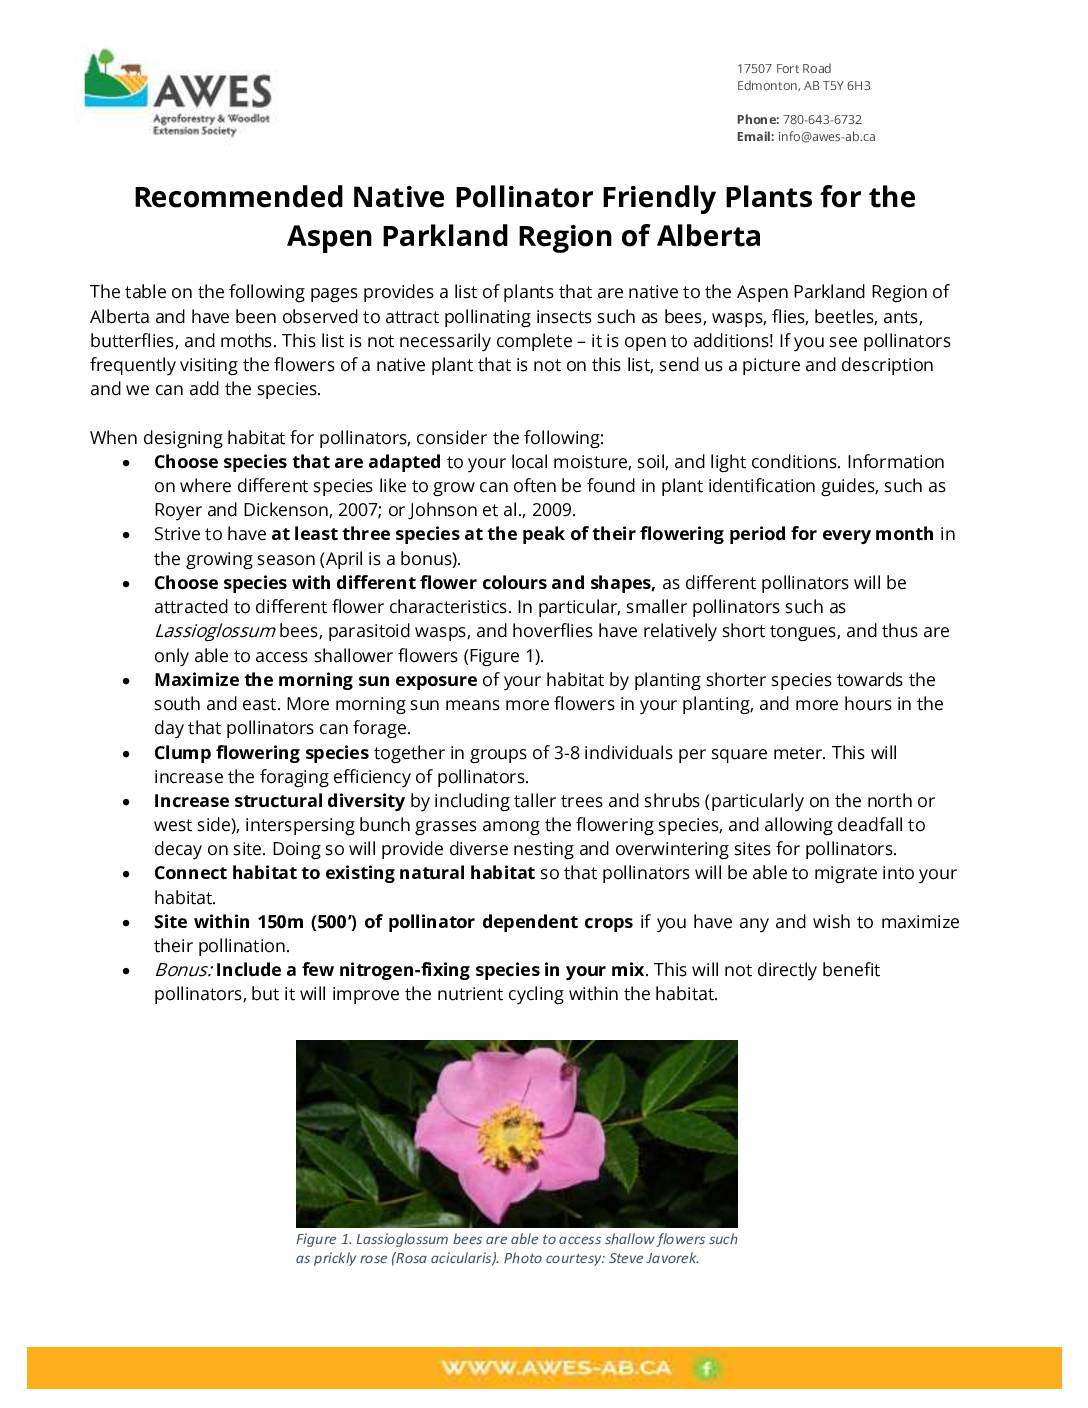 Recommended Native Pollinator Friendly Plants for the Aspen Parkland Region of Alberta